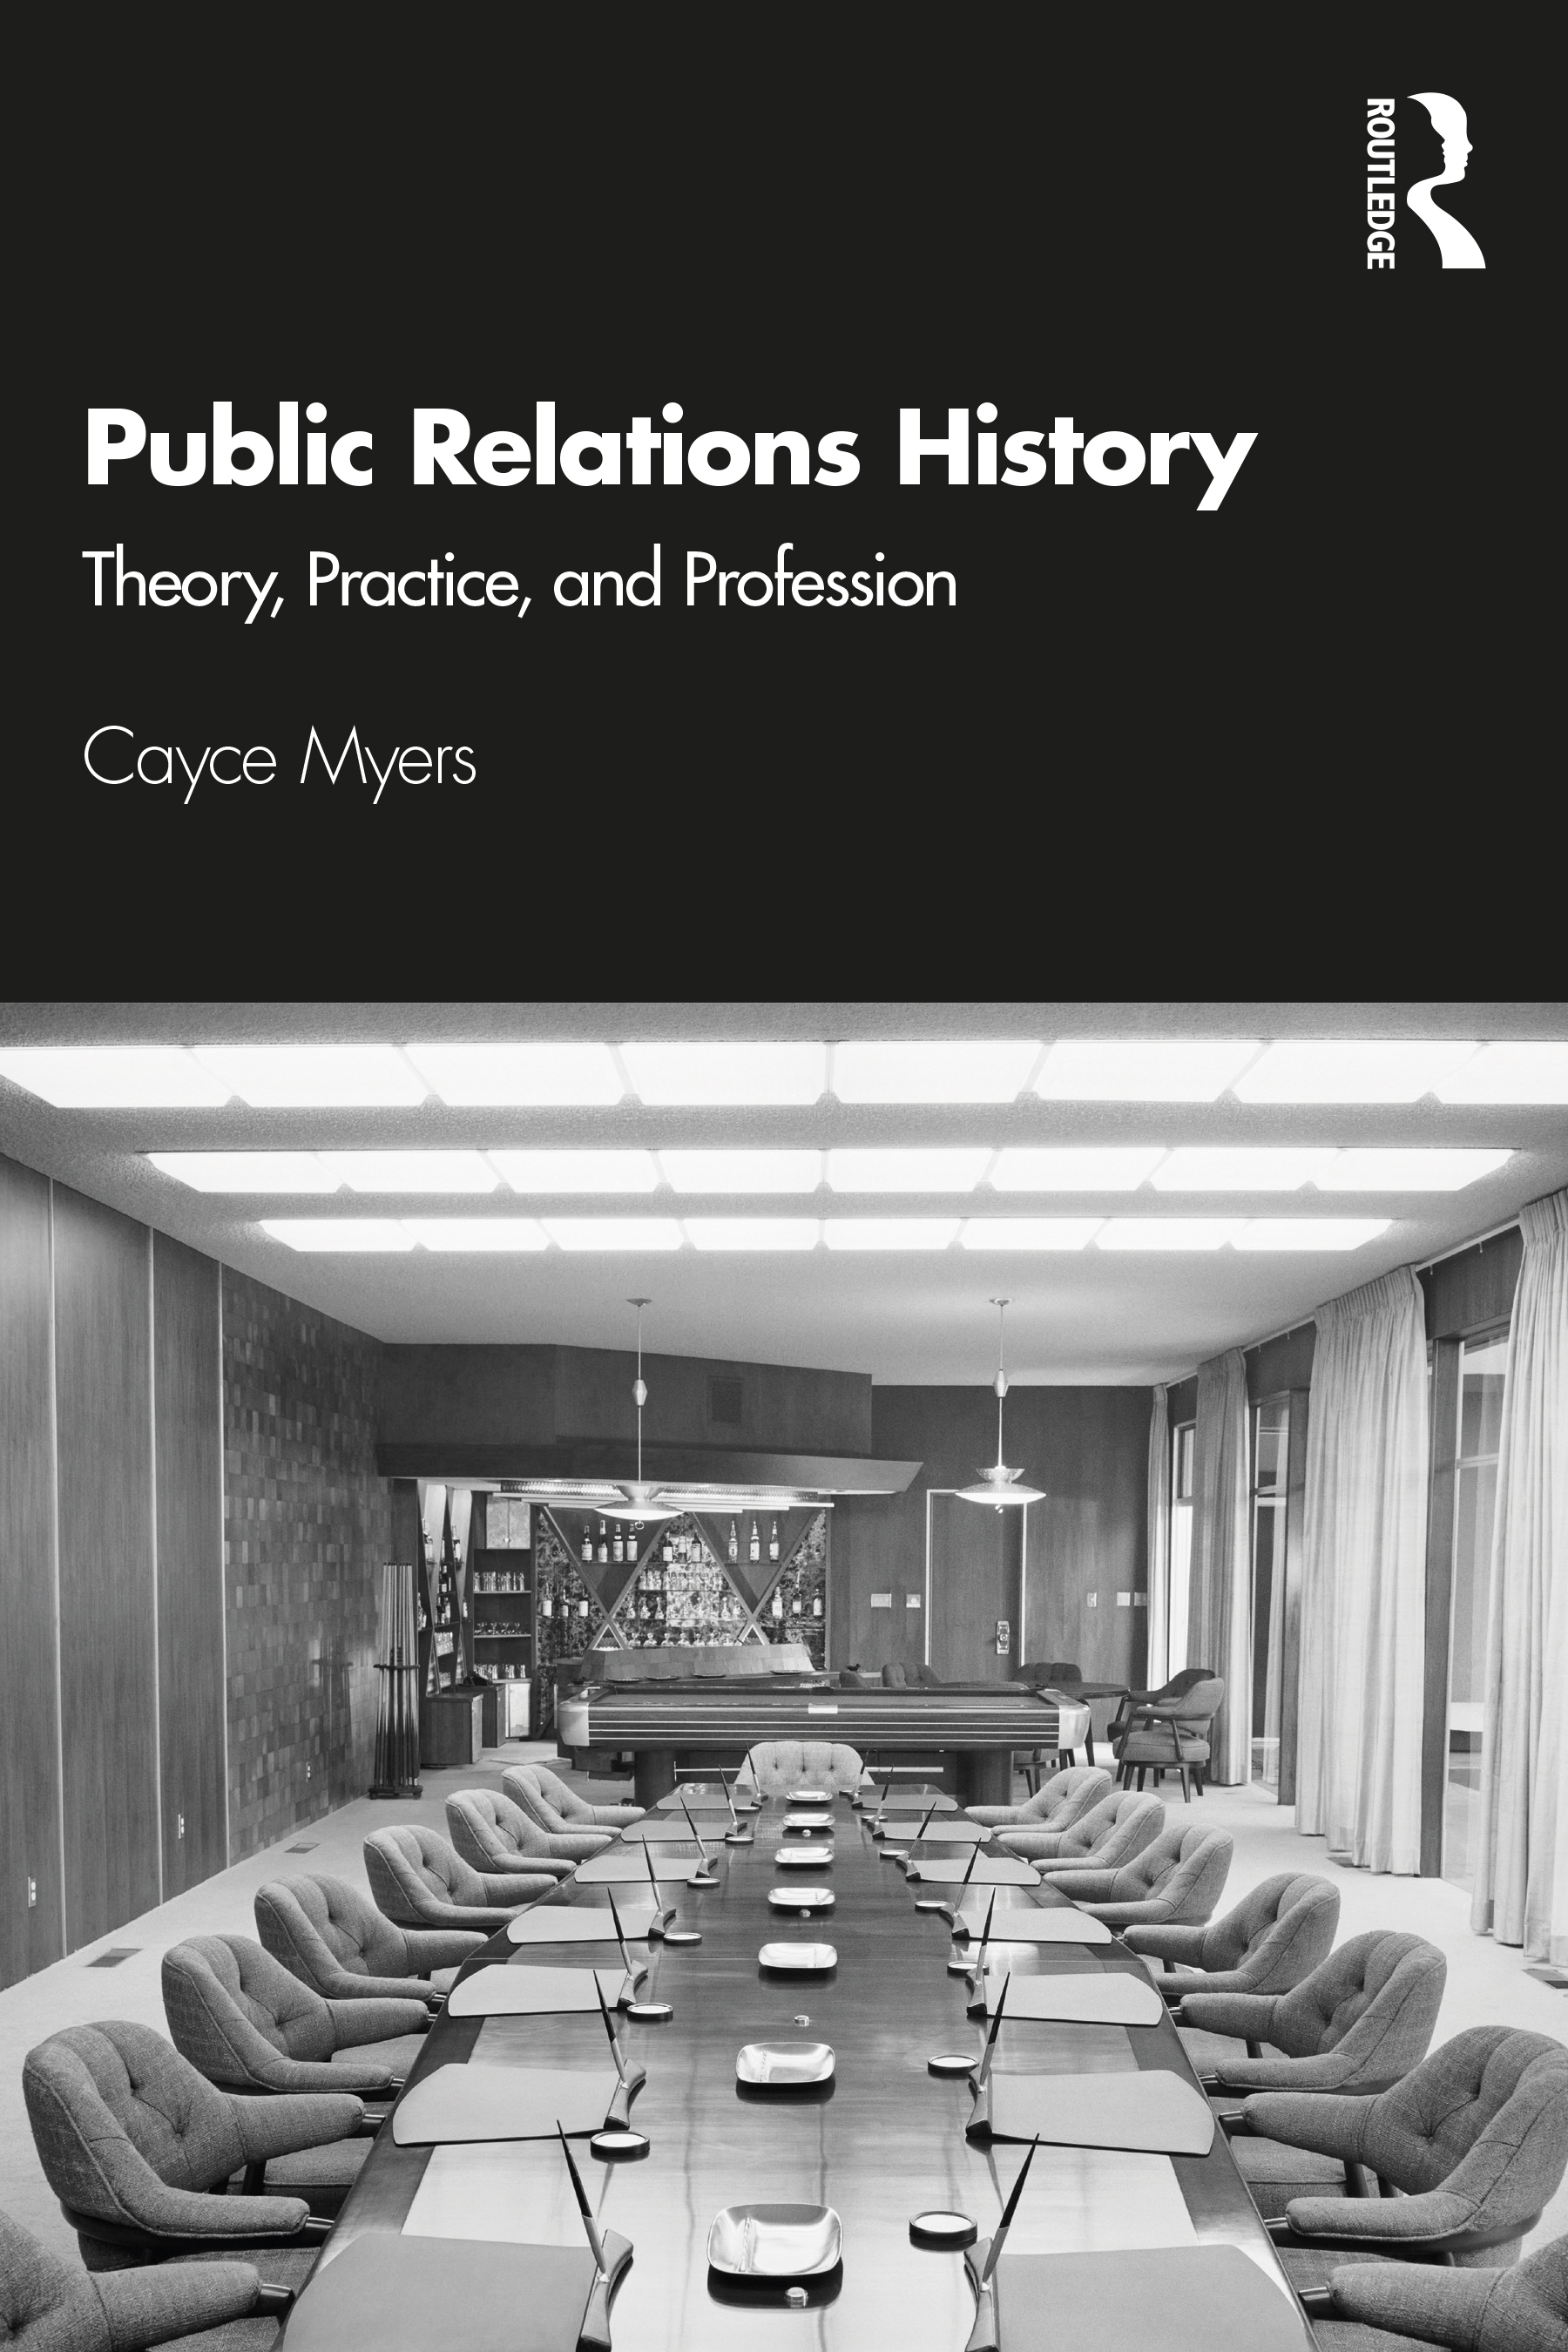 Public Relations History: Theory, Practice, and Profession book cover